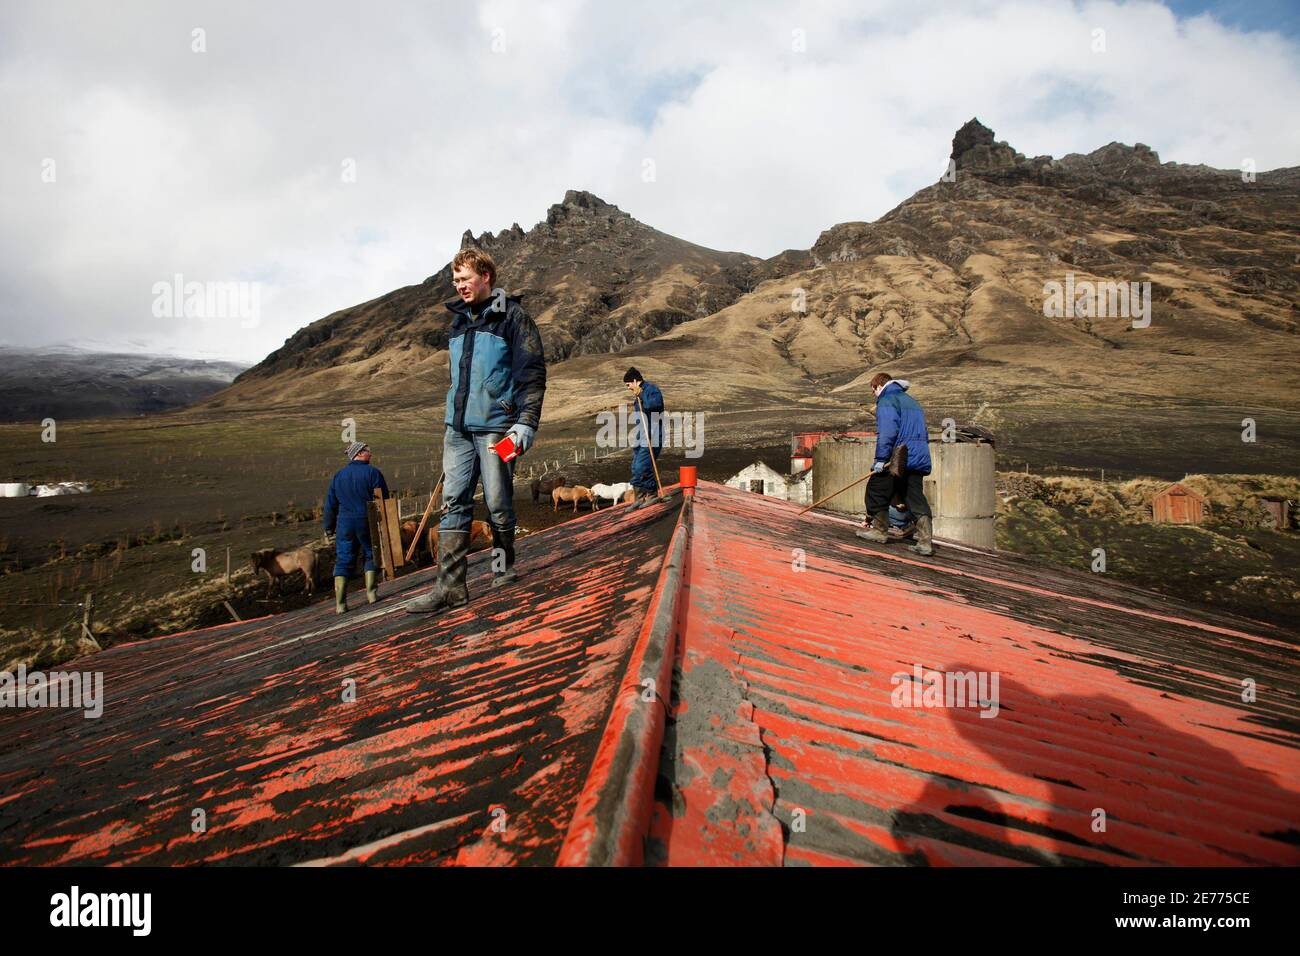 Farmers (from L to R) Bjarni Thorvaldsson, Benedikt Eythorsson, Hans Thorvaldsson and Thorgrimur Bjarnason walk off a roof after cleaning off volcanic ash that accumulated on a barn from an erupting volcano near Eyjafjallajokull April 18, 2010.  REUTERS/Lucas Jackson (ICELAND - Tags: DISASTER ENVIRONMENT) Stock Photo